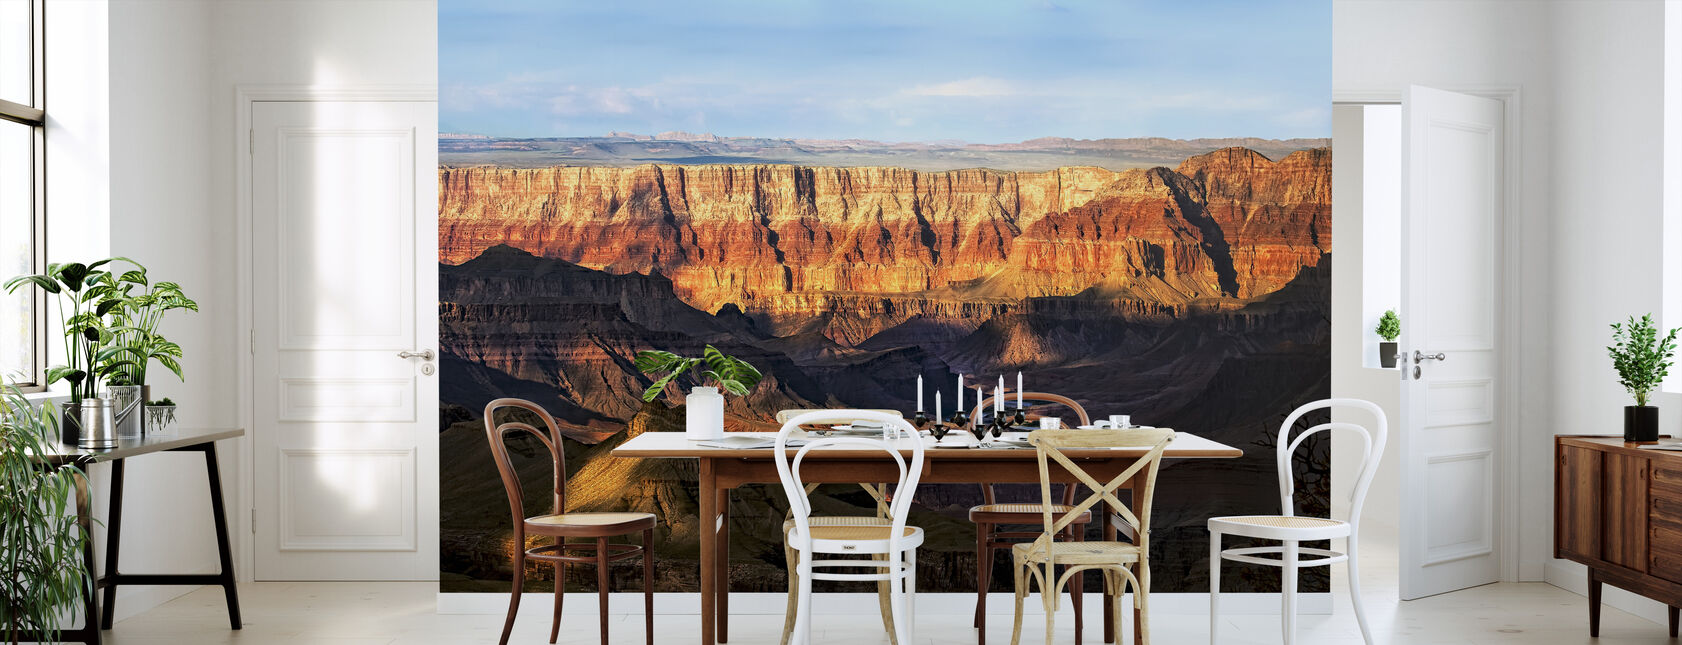 Canyon View - Wallpaper - Kitchen